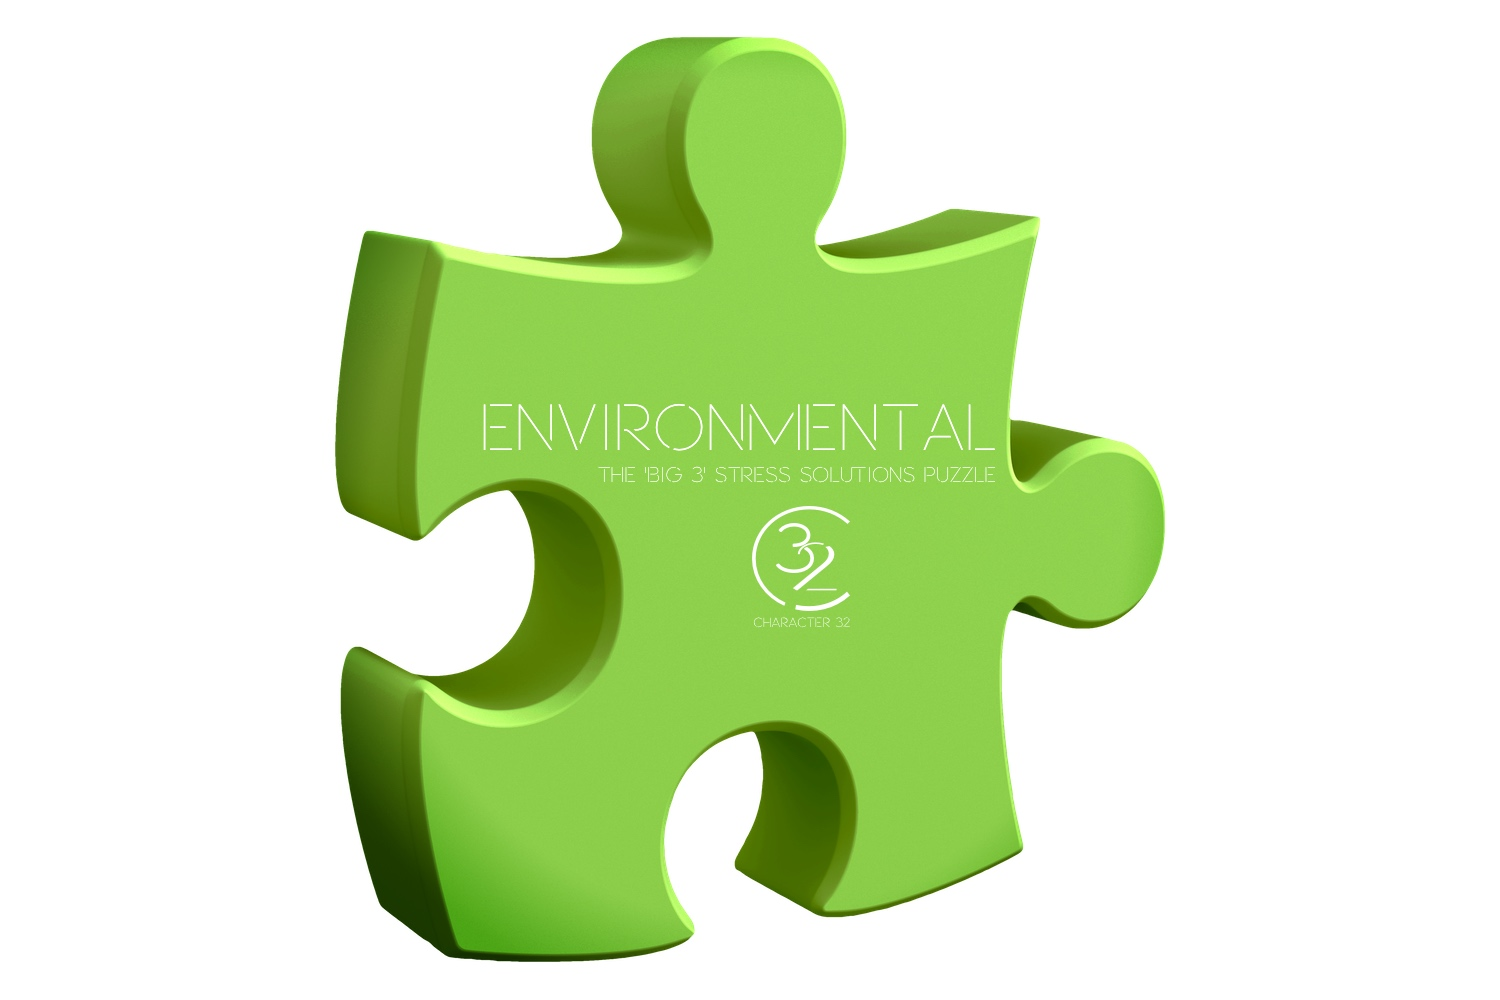 environmental-stress-management-coping-dealing-with-stress-signs-and-symptoms-the-big-3-puzzle-character-32-c32